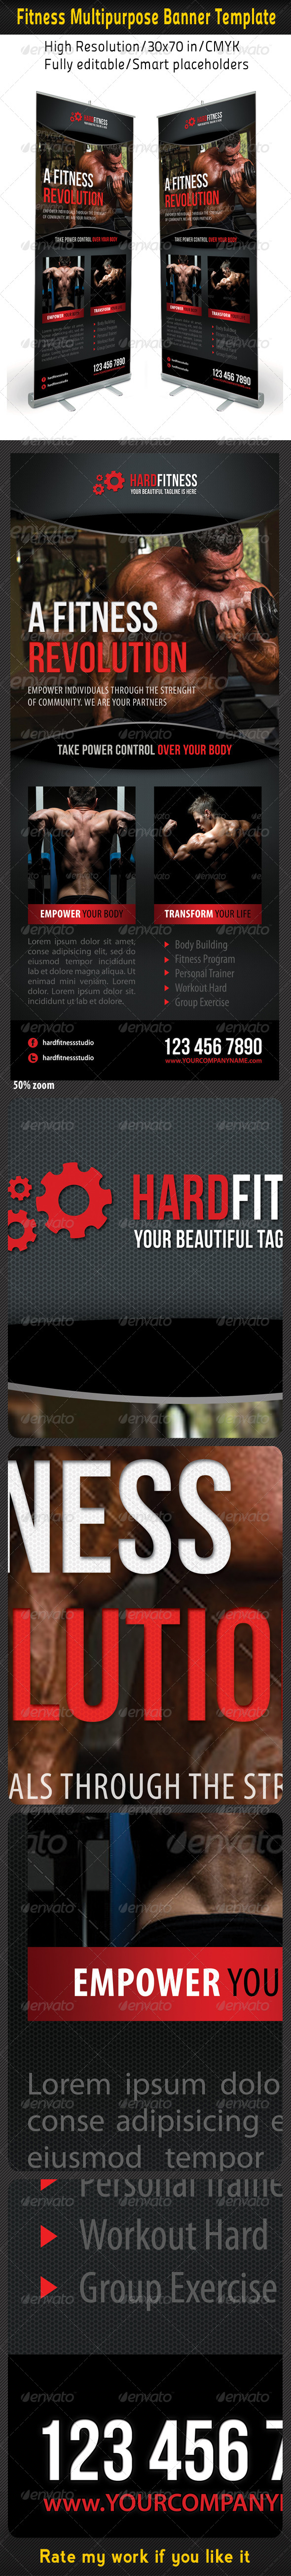 Fitness Multipurpose Banner Template 11 - Signage Print Templates